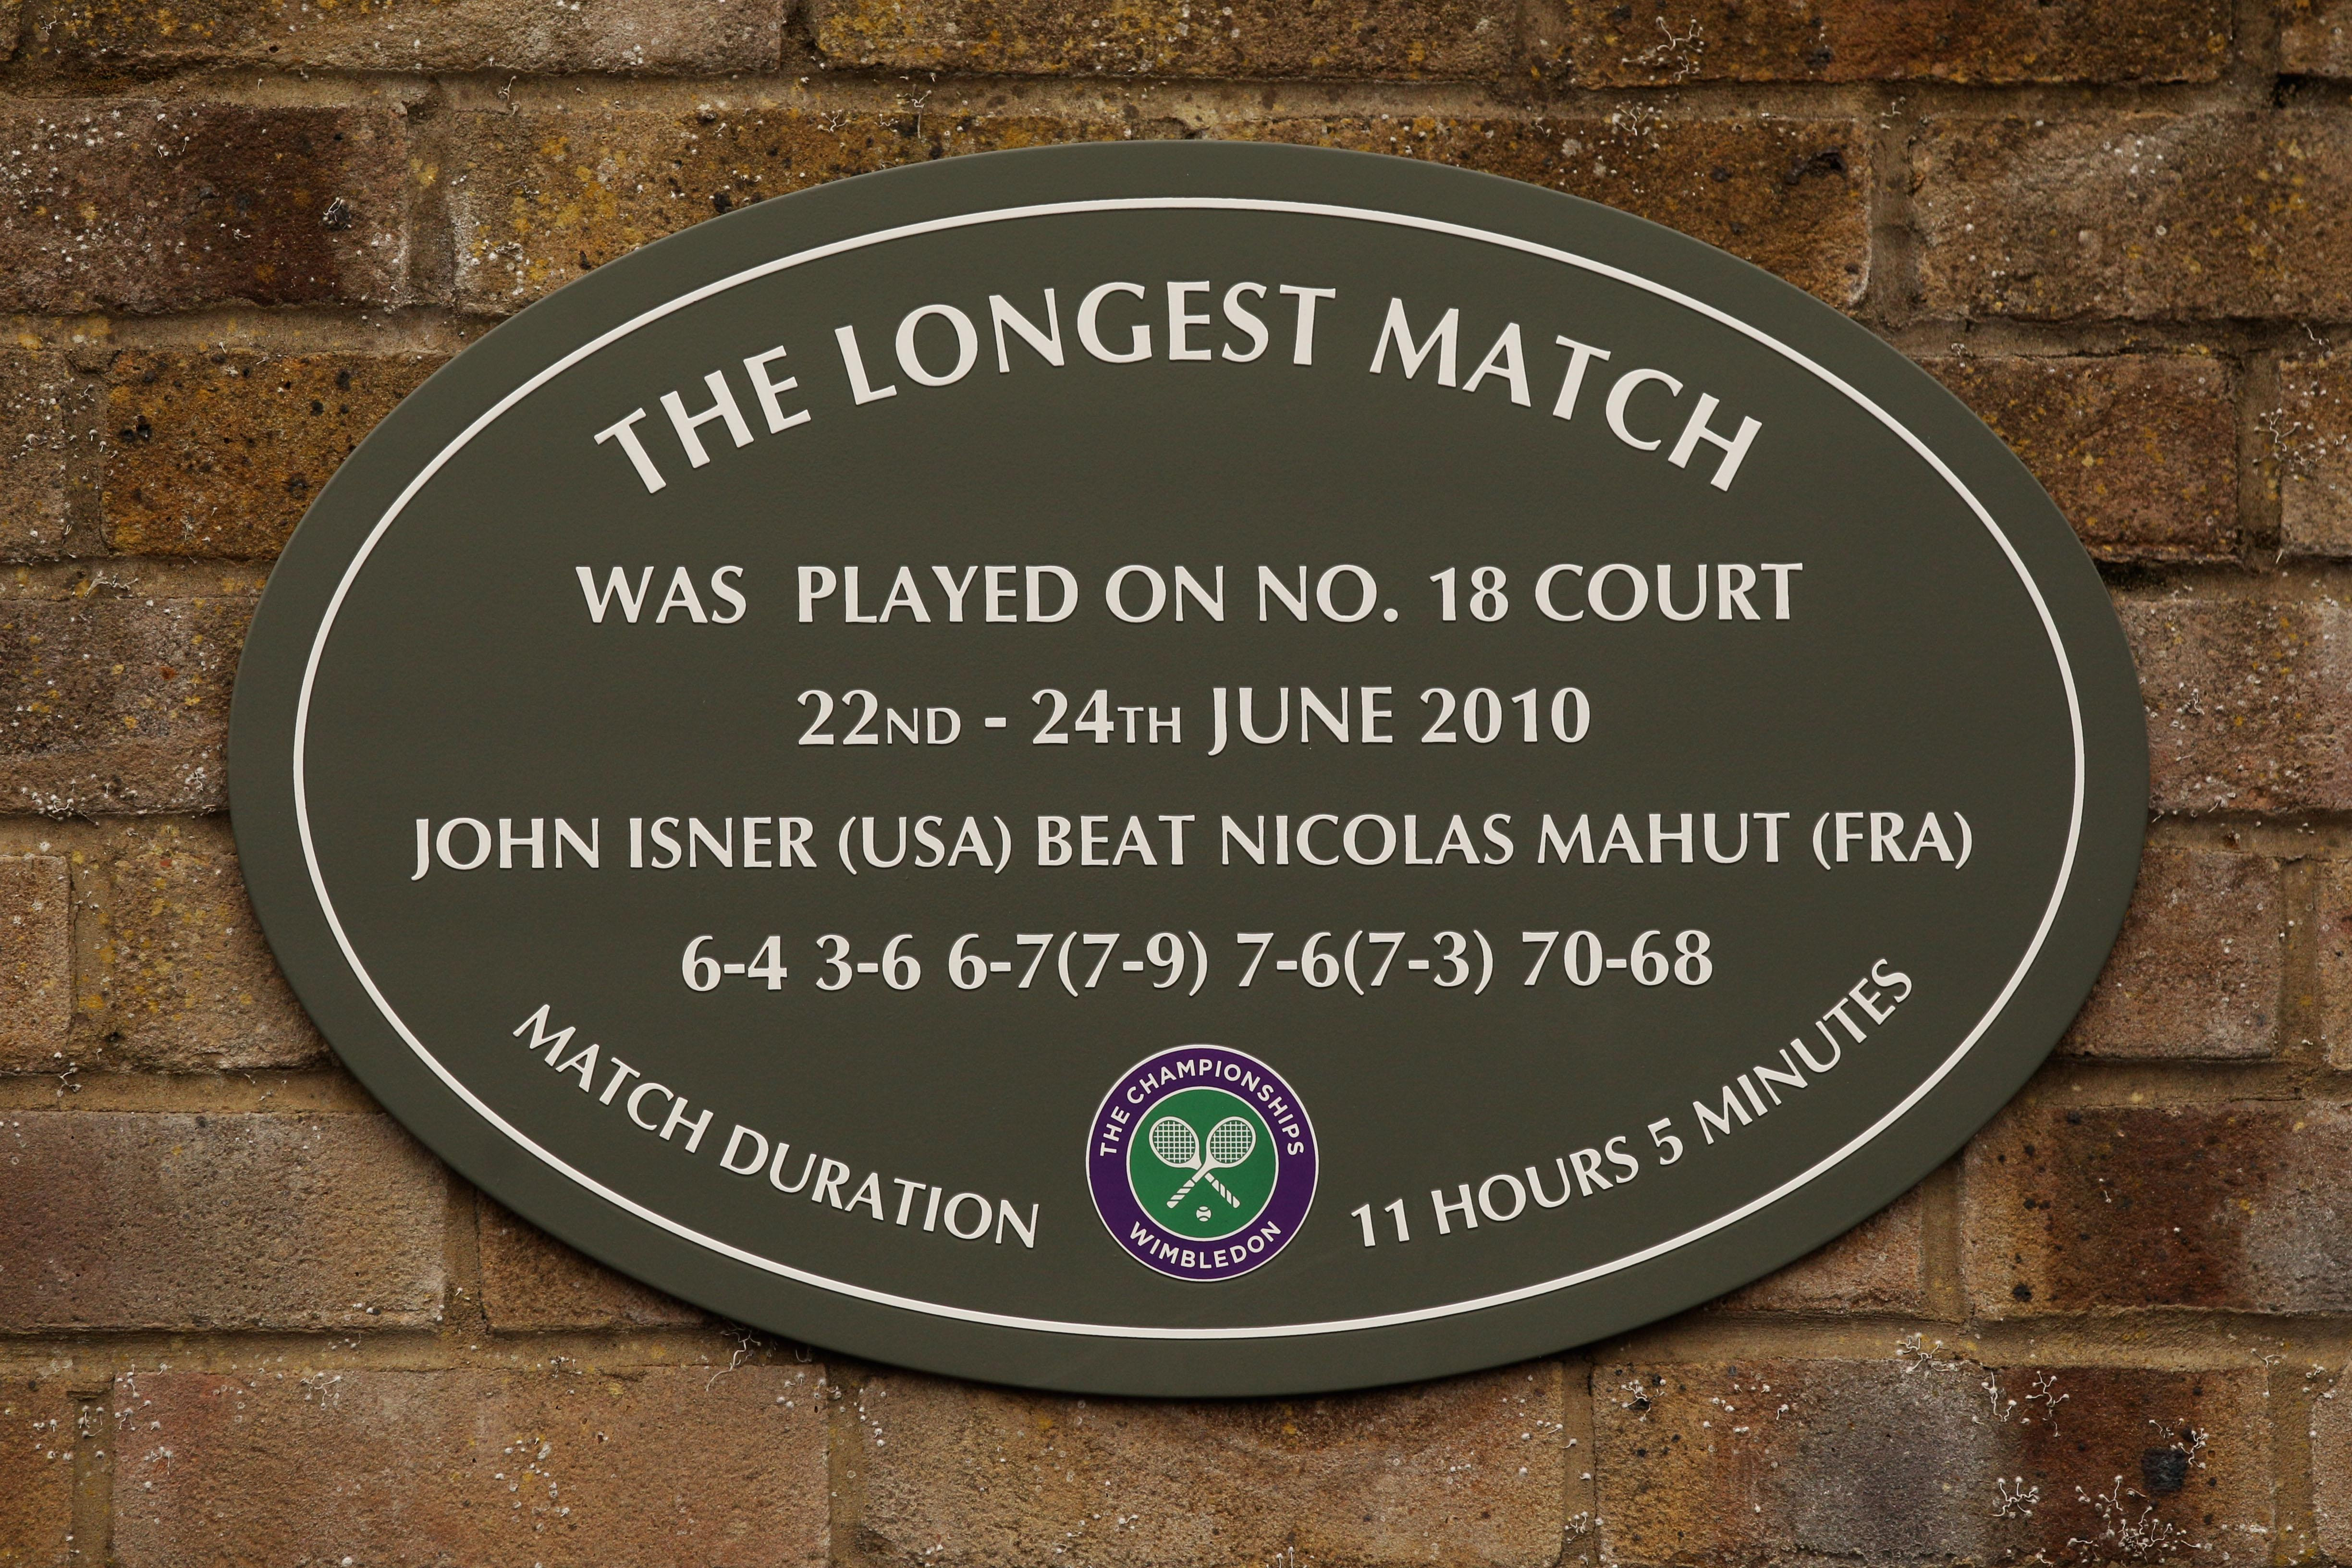 A plaque was erected at Wimbledon commemorating the world record match